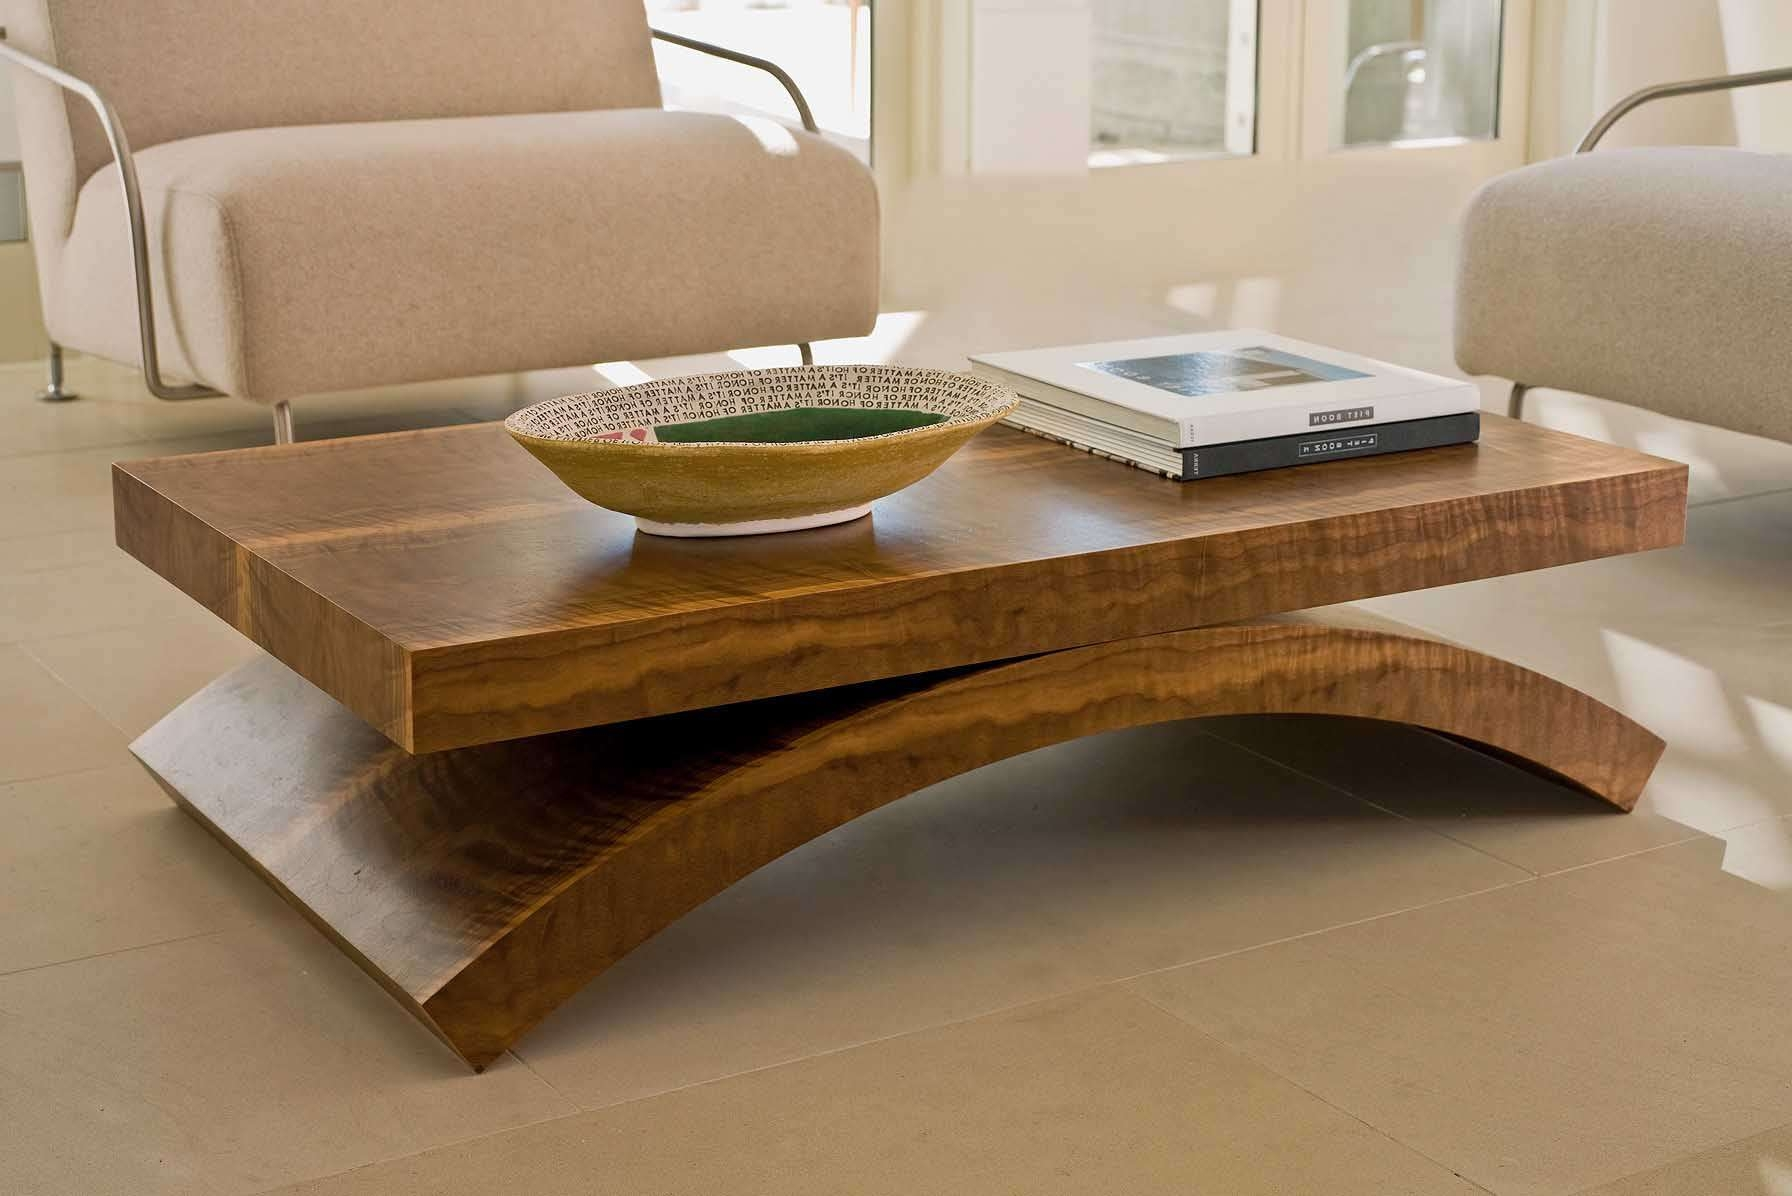 Newest Curve Coffee Tables Regarding Unique Coffee Tables – Unique Coffee Tables And End Tables, Unique (View 9 of 20)